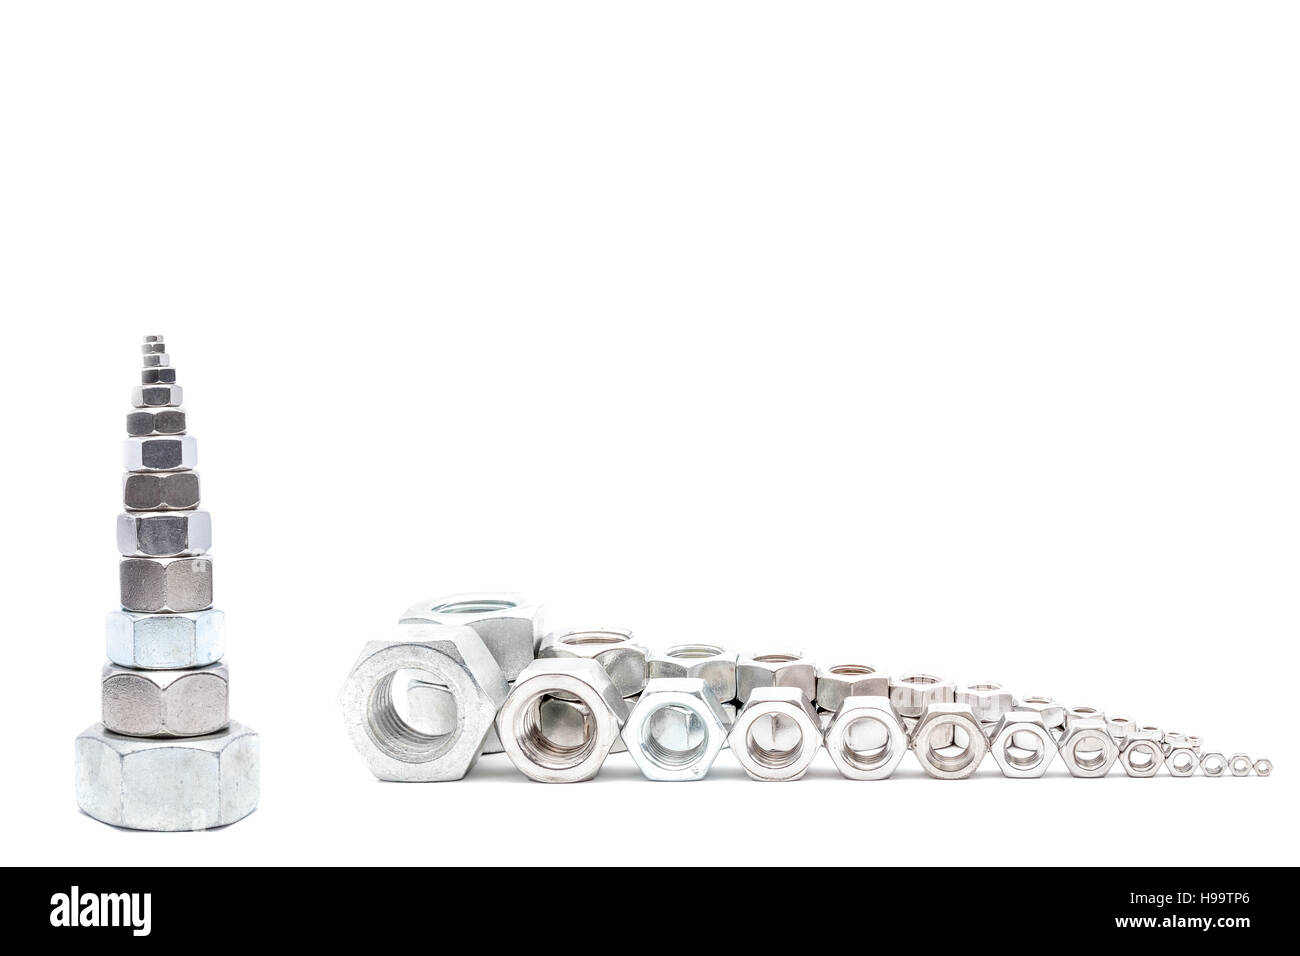 M30 Stock Photos Images Alamy Engine Diagram Several Iron Bolts From To M3 Big Small Image